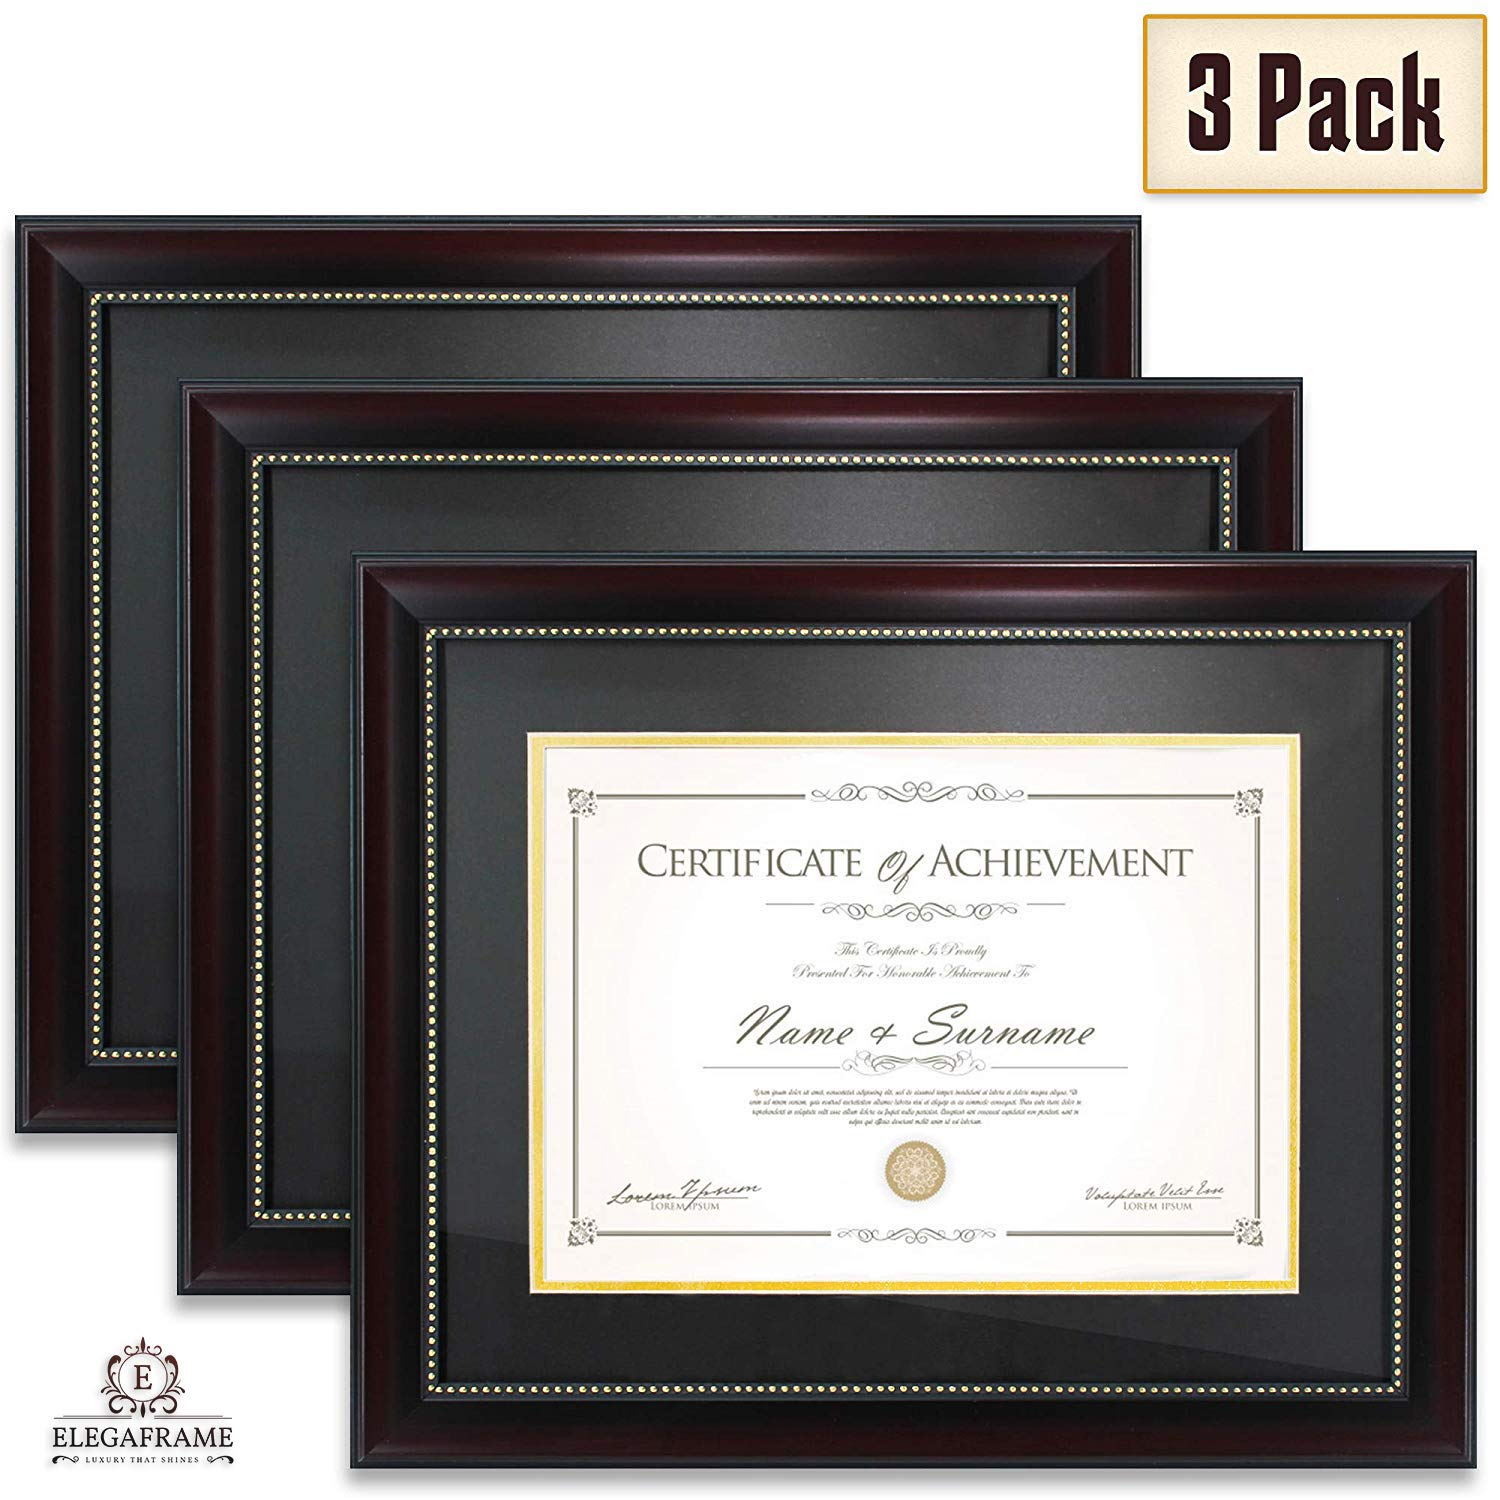 Elegaframe Diploma Frame (3-Pack) That Holds 8.5x11 Inch Document with Mat and 11x14 Inch Without Mat, Black and Red with Golden Rim, for Documents and Certificates by Elegaframe